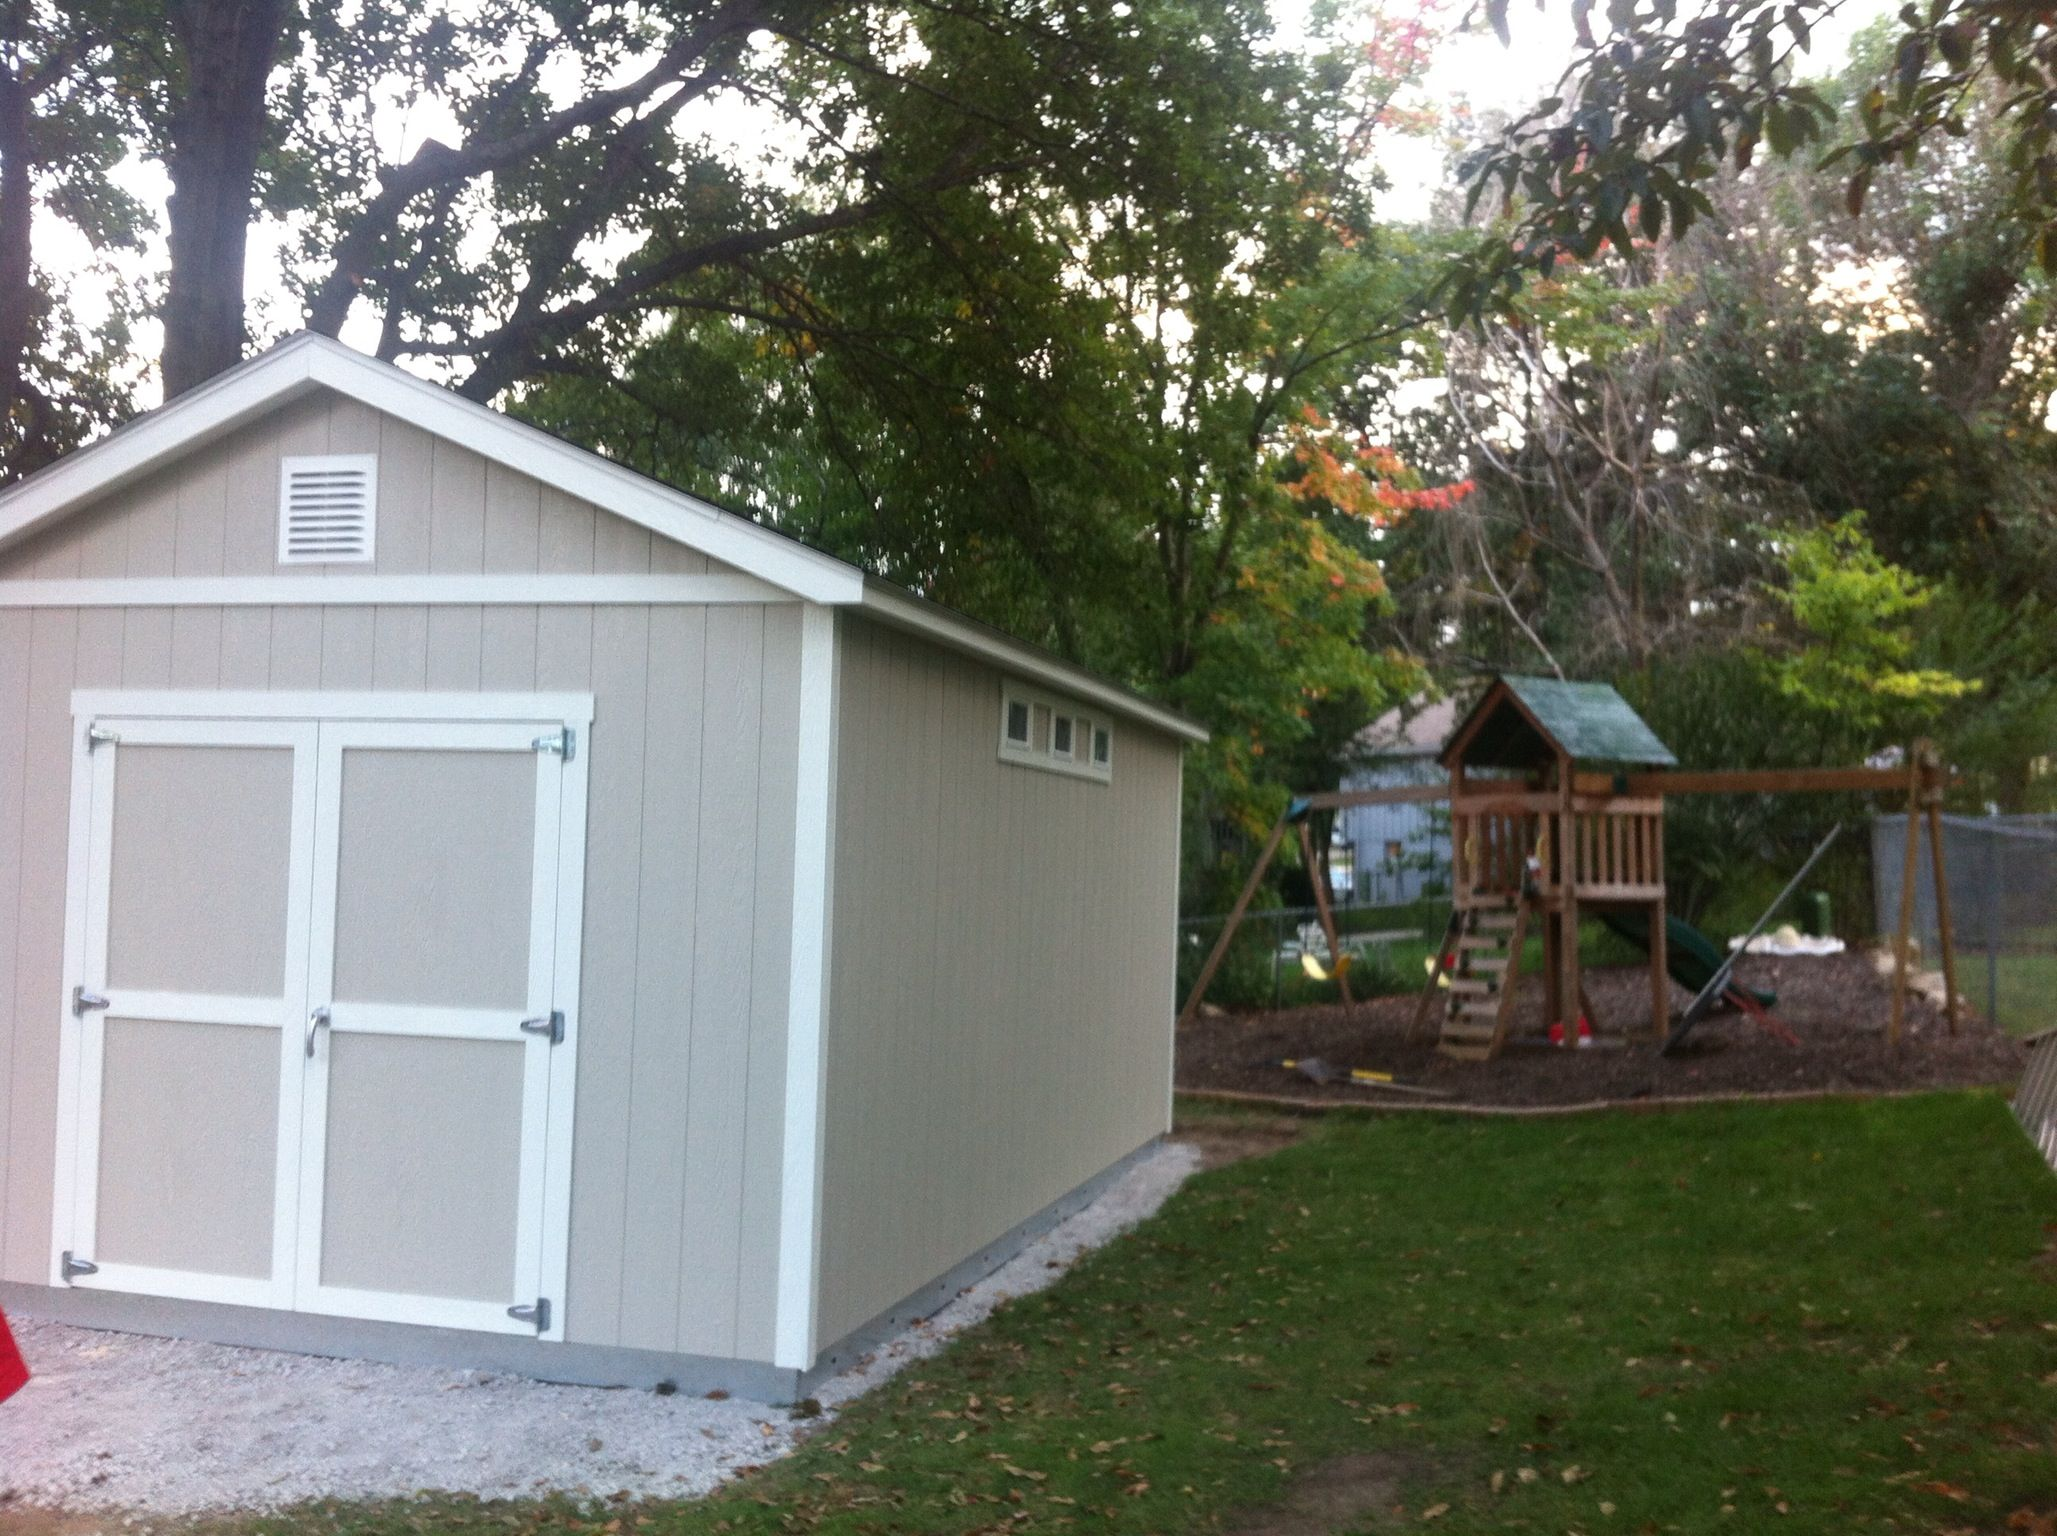 adorable tuff shed pictures. Get free high quality HD wallpapers adorable tuff shed pictures wallpaper android oxzd bid